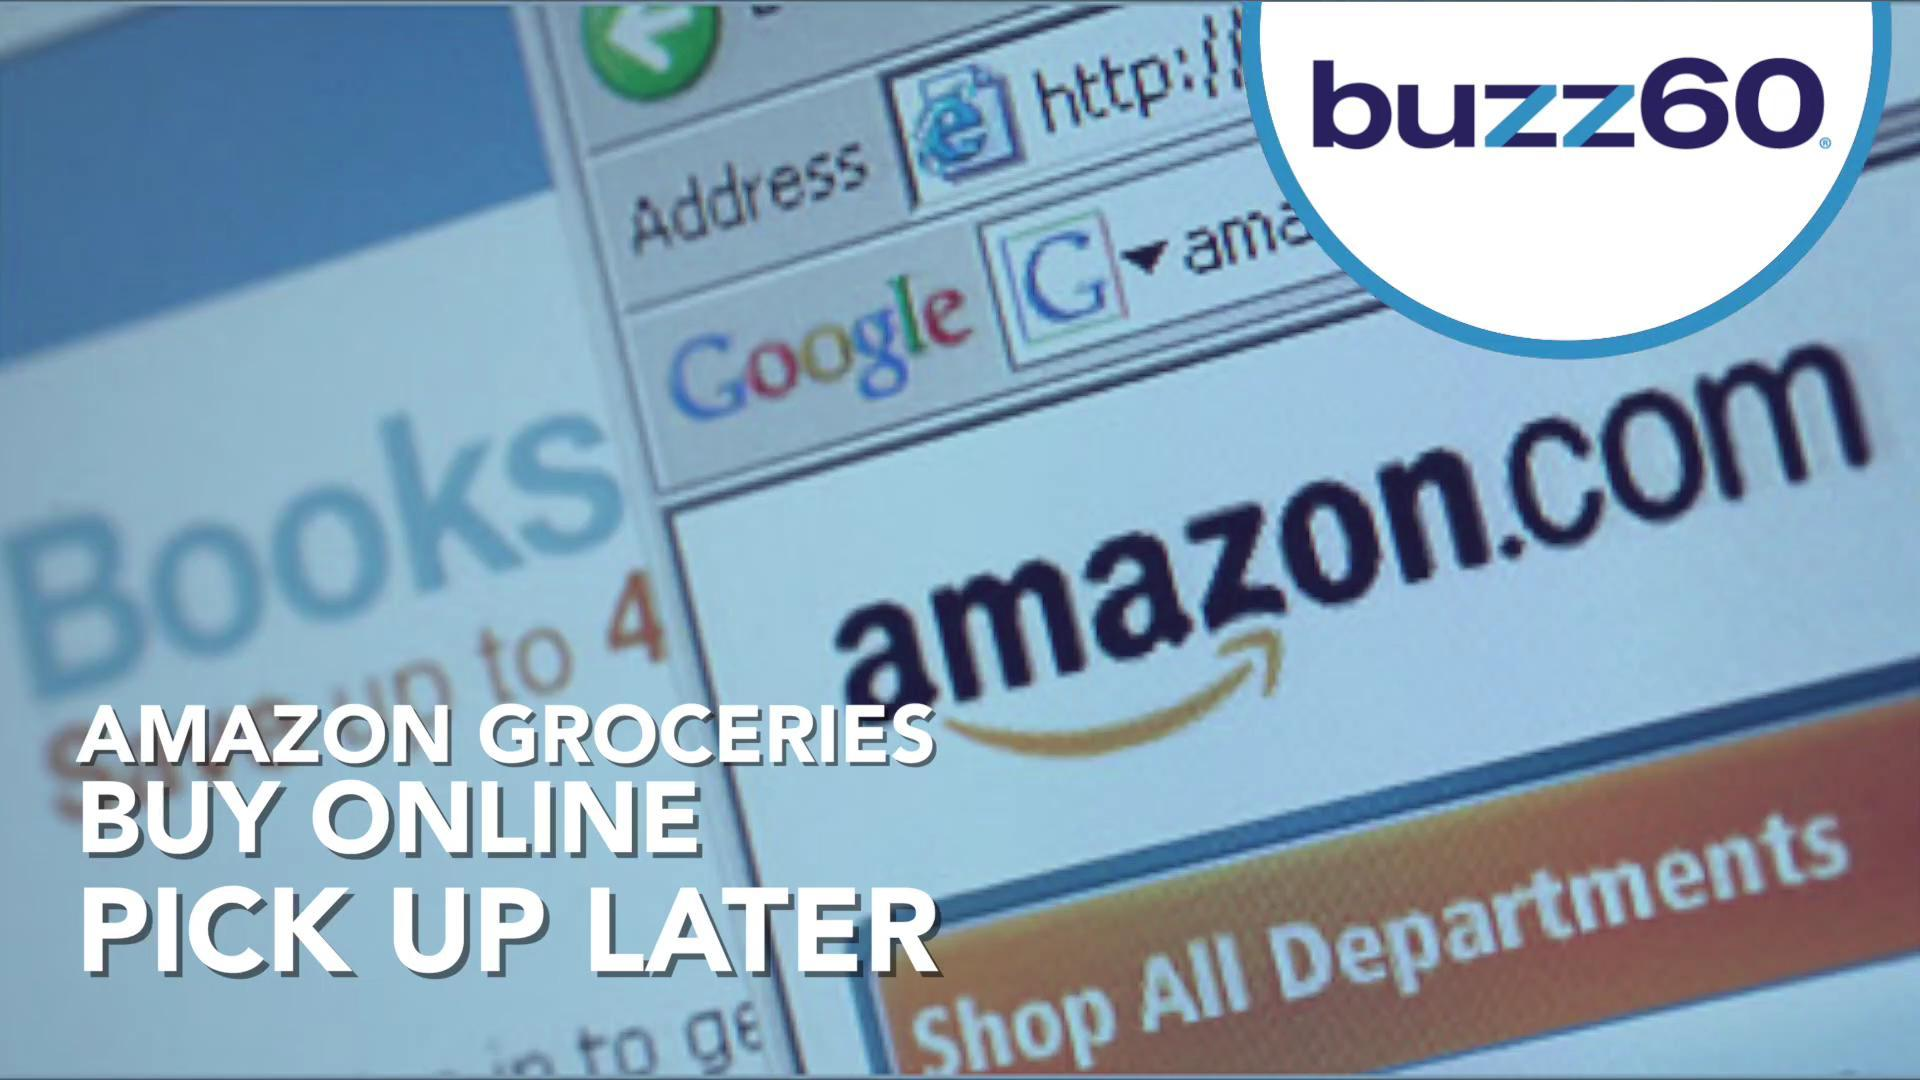 Amazon Reportedly Plans to Open Brick-and-Mortar Grocery Store